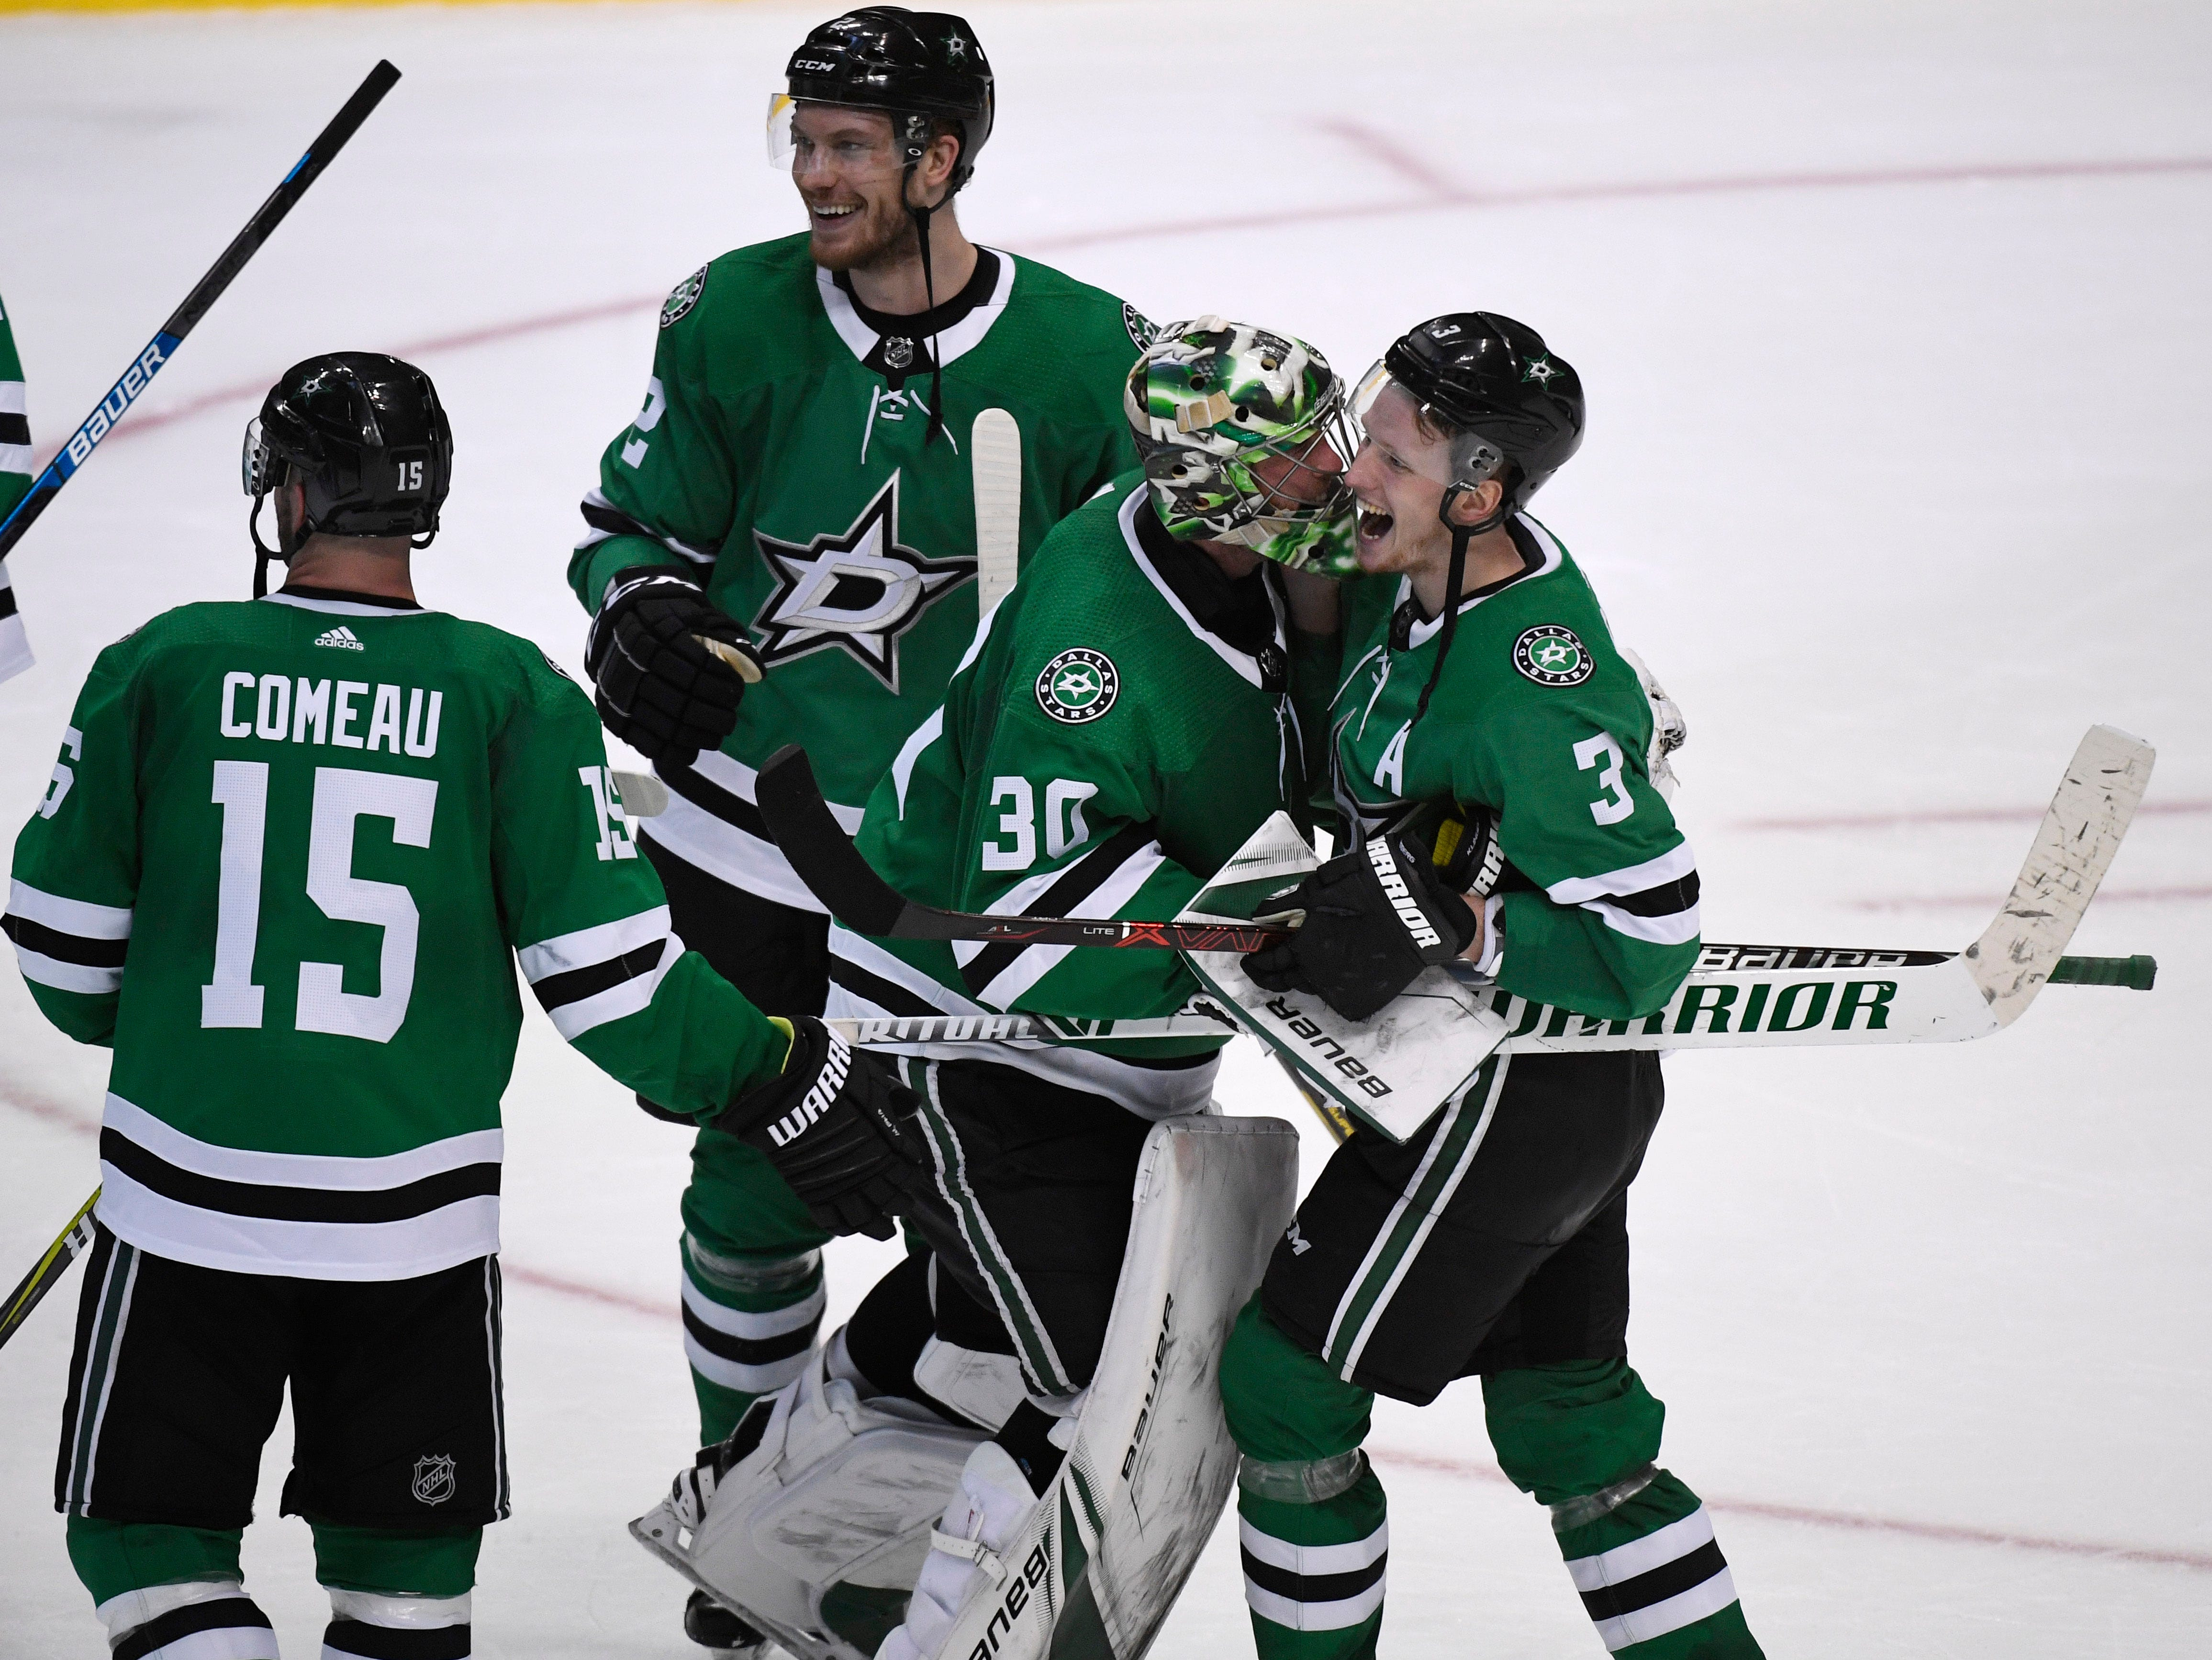 The Dallas Stars celebrate their 2-1 overtime win over the Nashville Predators, clinching their divisional semifinal series at the American Airlines Center in Dallas, Texas, Monday, April 22, 2019.